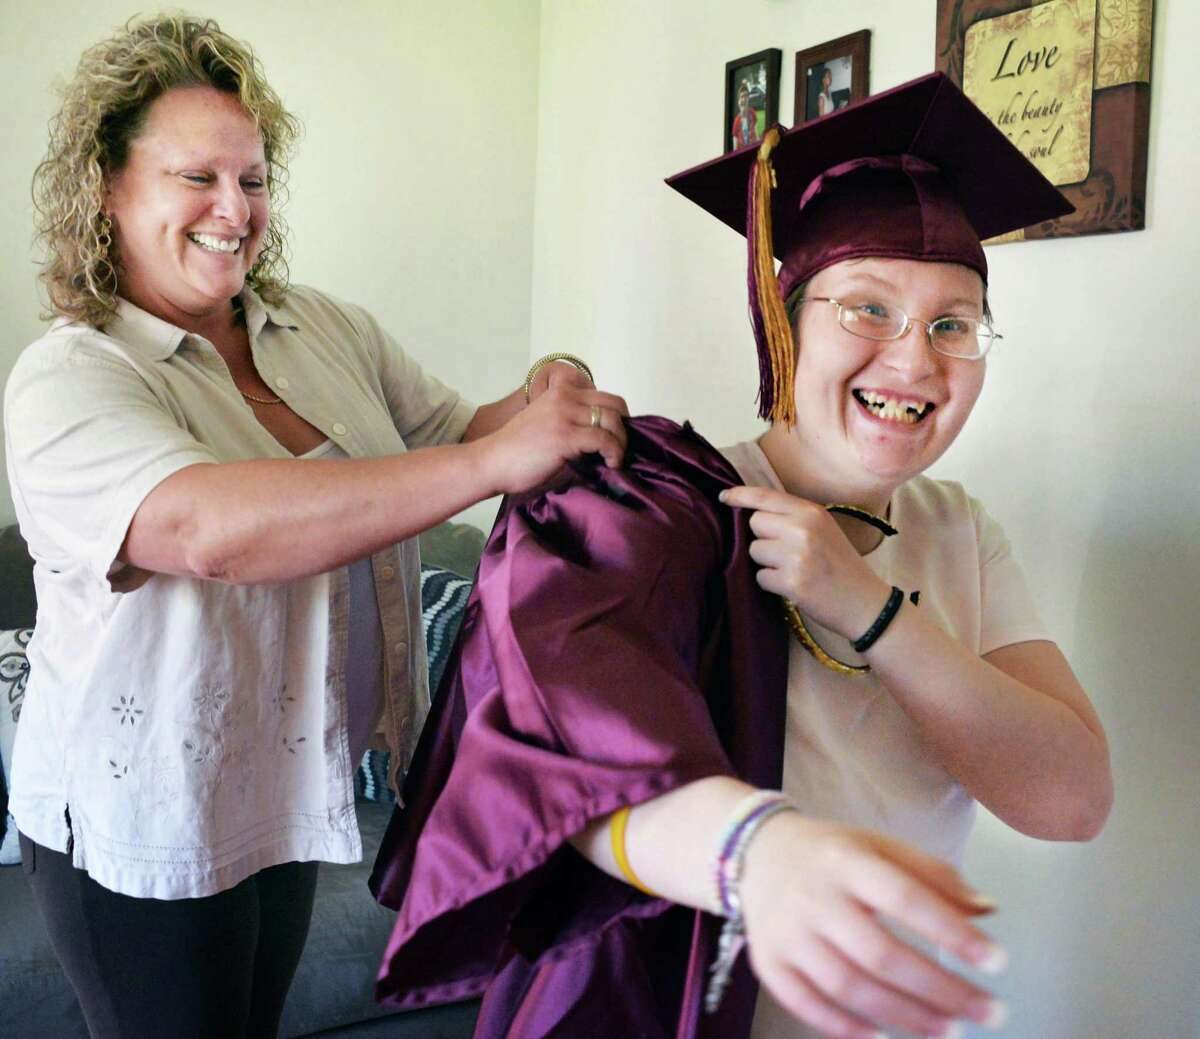 Denise Famiano, left, helps her daughter Brittany Manning, 21, try on her cap and gown as they prepare for the Colonie Central School graduation ceremony Friday, June 27, 2014, at the group home where Manning lives in Colonie, N.Y. Manning is developmentally disabled and suffers from Prader-Willi syndrome, a rare genetic disease whose chief symptom is uncontrollable hunger that is impossible to satisfy and can lead to life-threatening obesity and other complications. She graduated from Colonie Central School on Friday. (John Carl D'Annibale / Times Union)